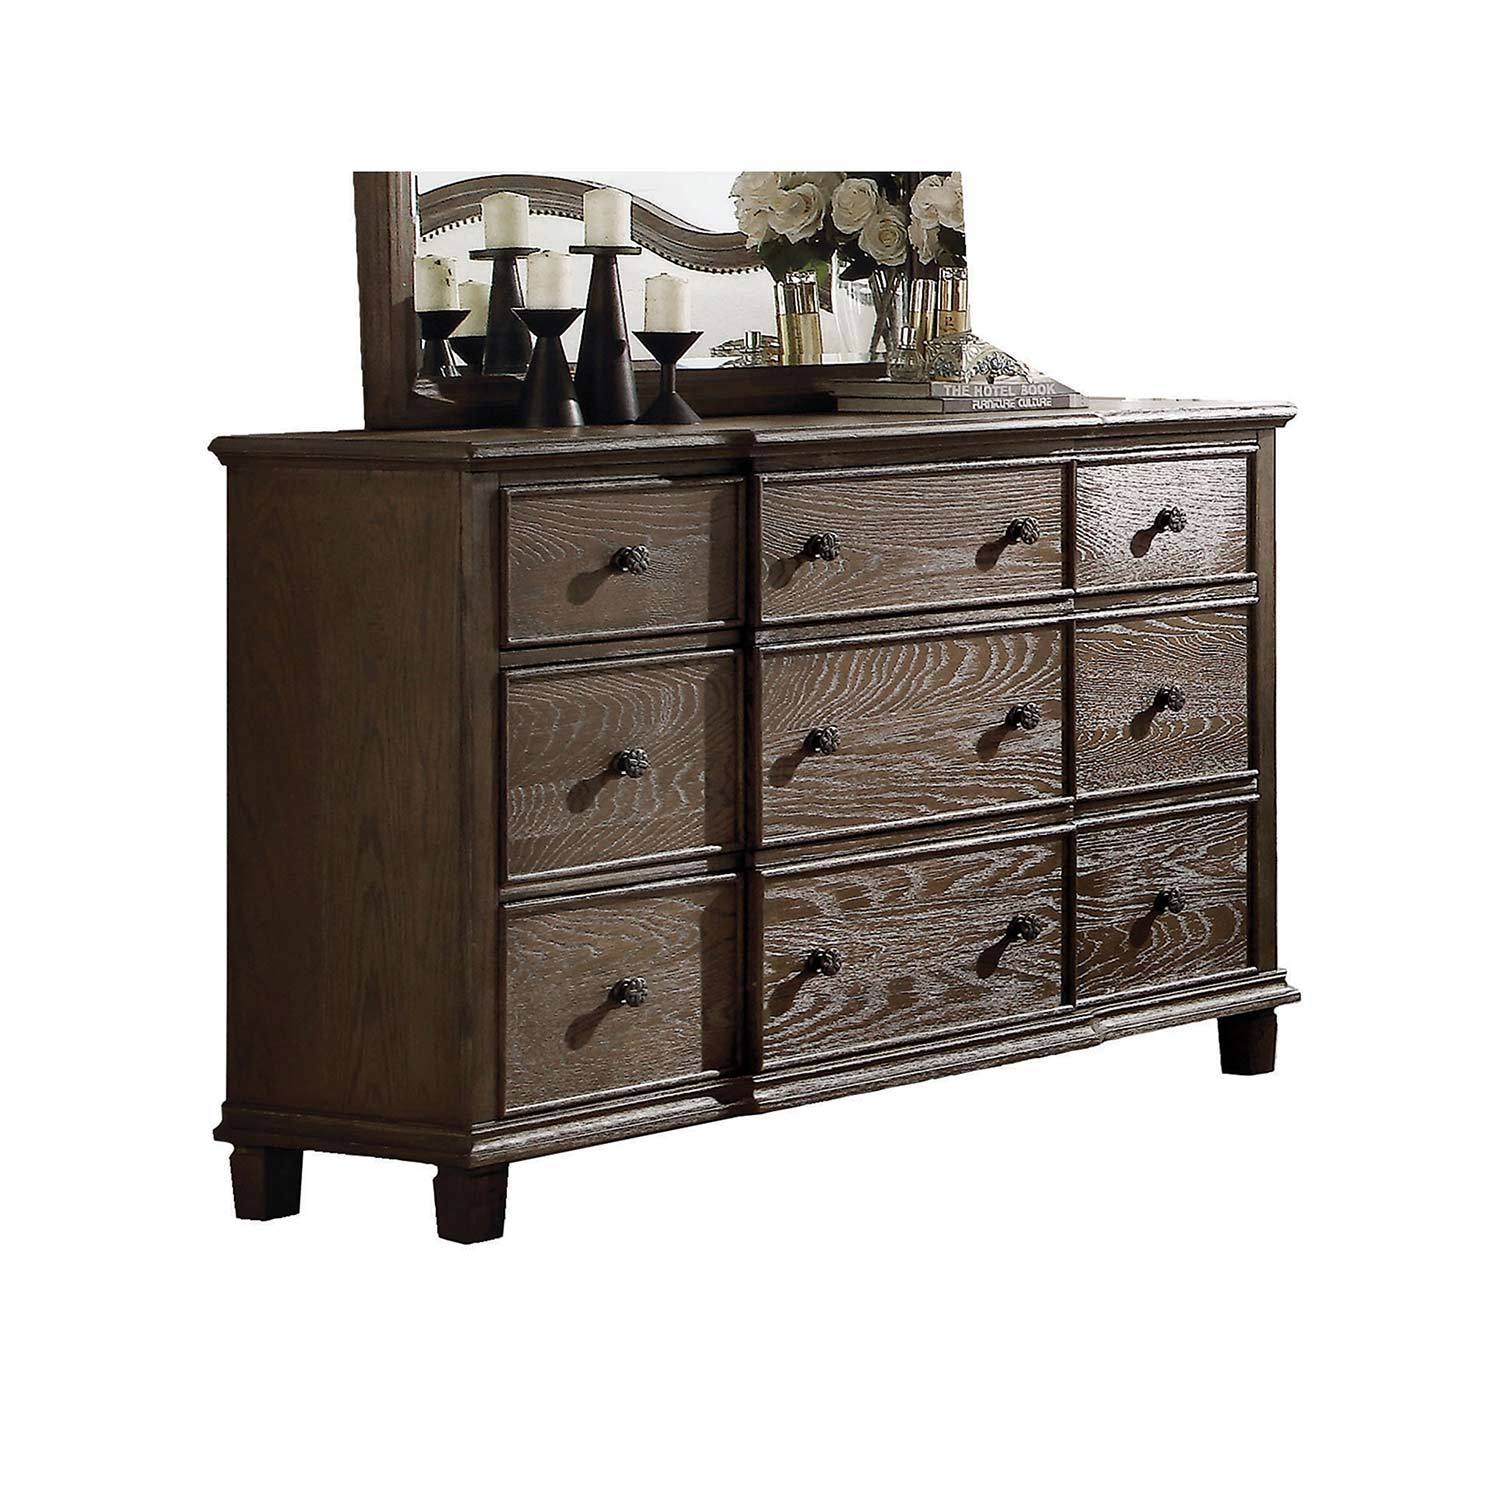 Acme Baudouin Dresser - Weathered Oak